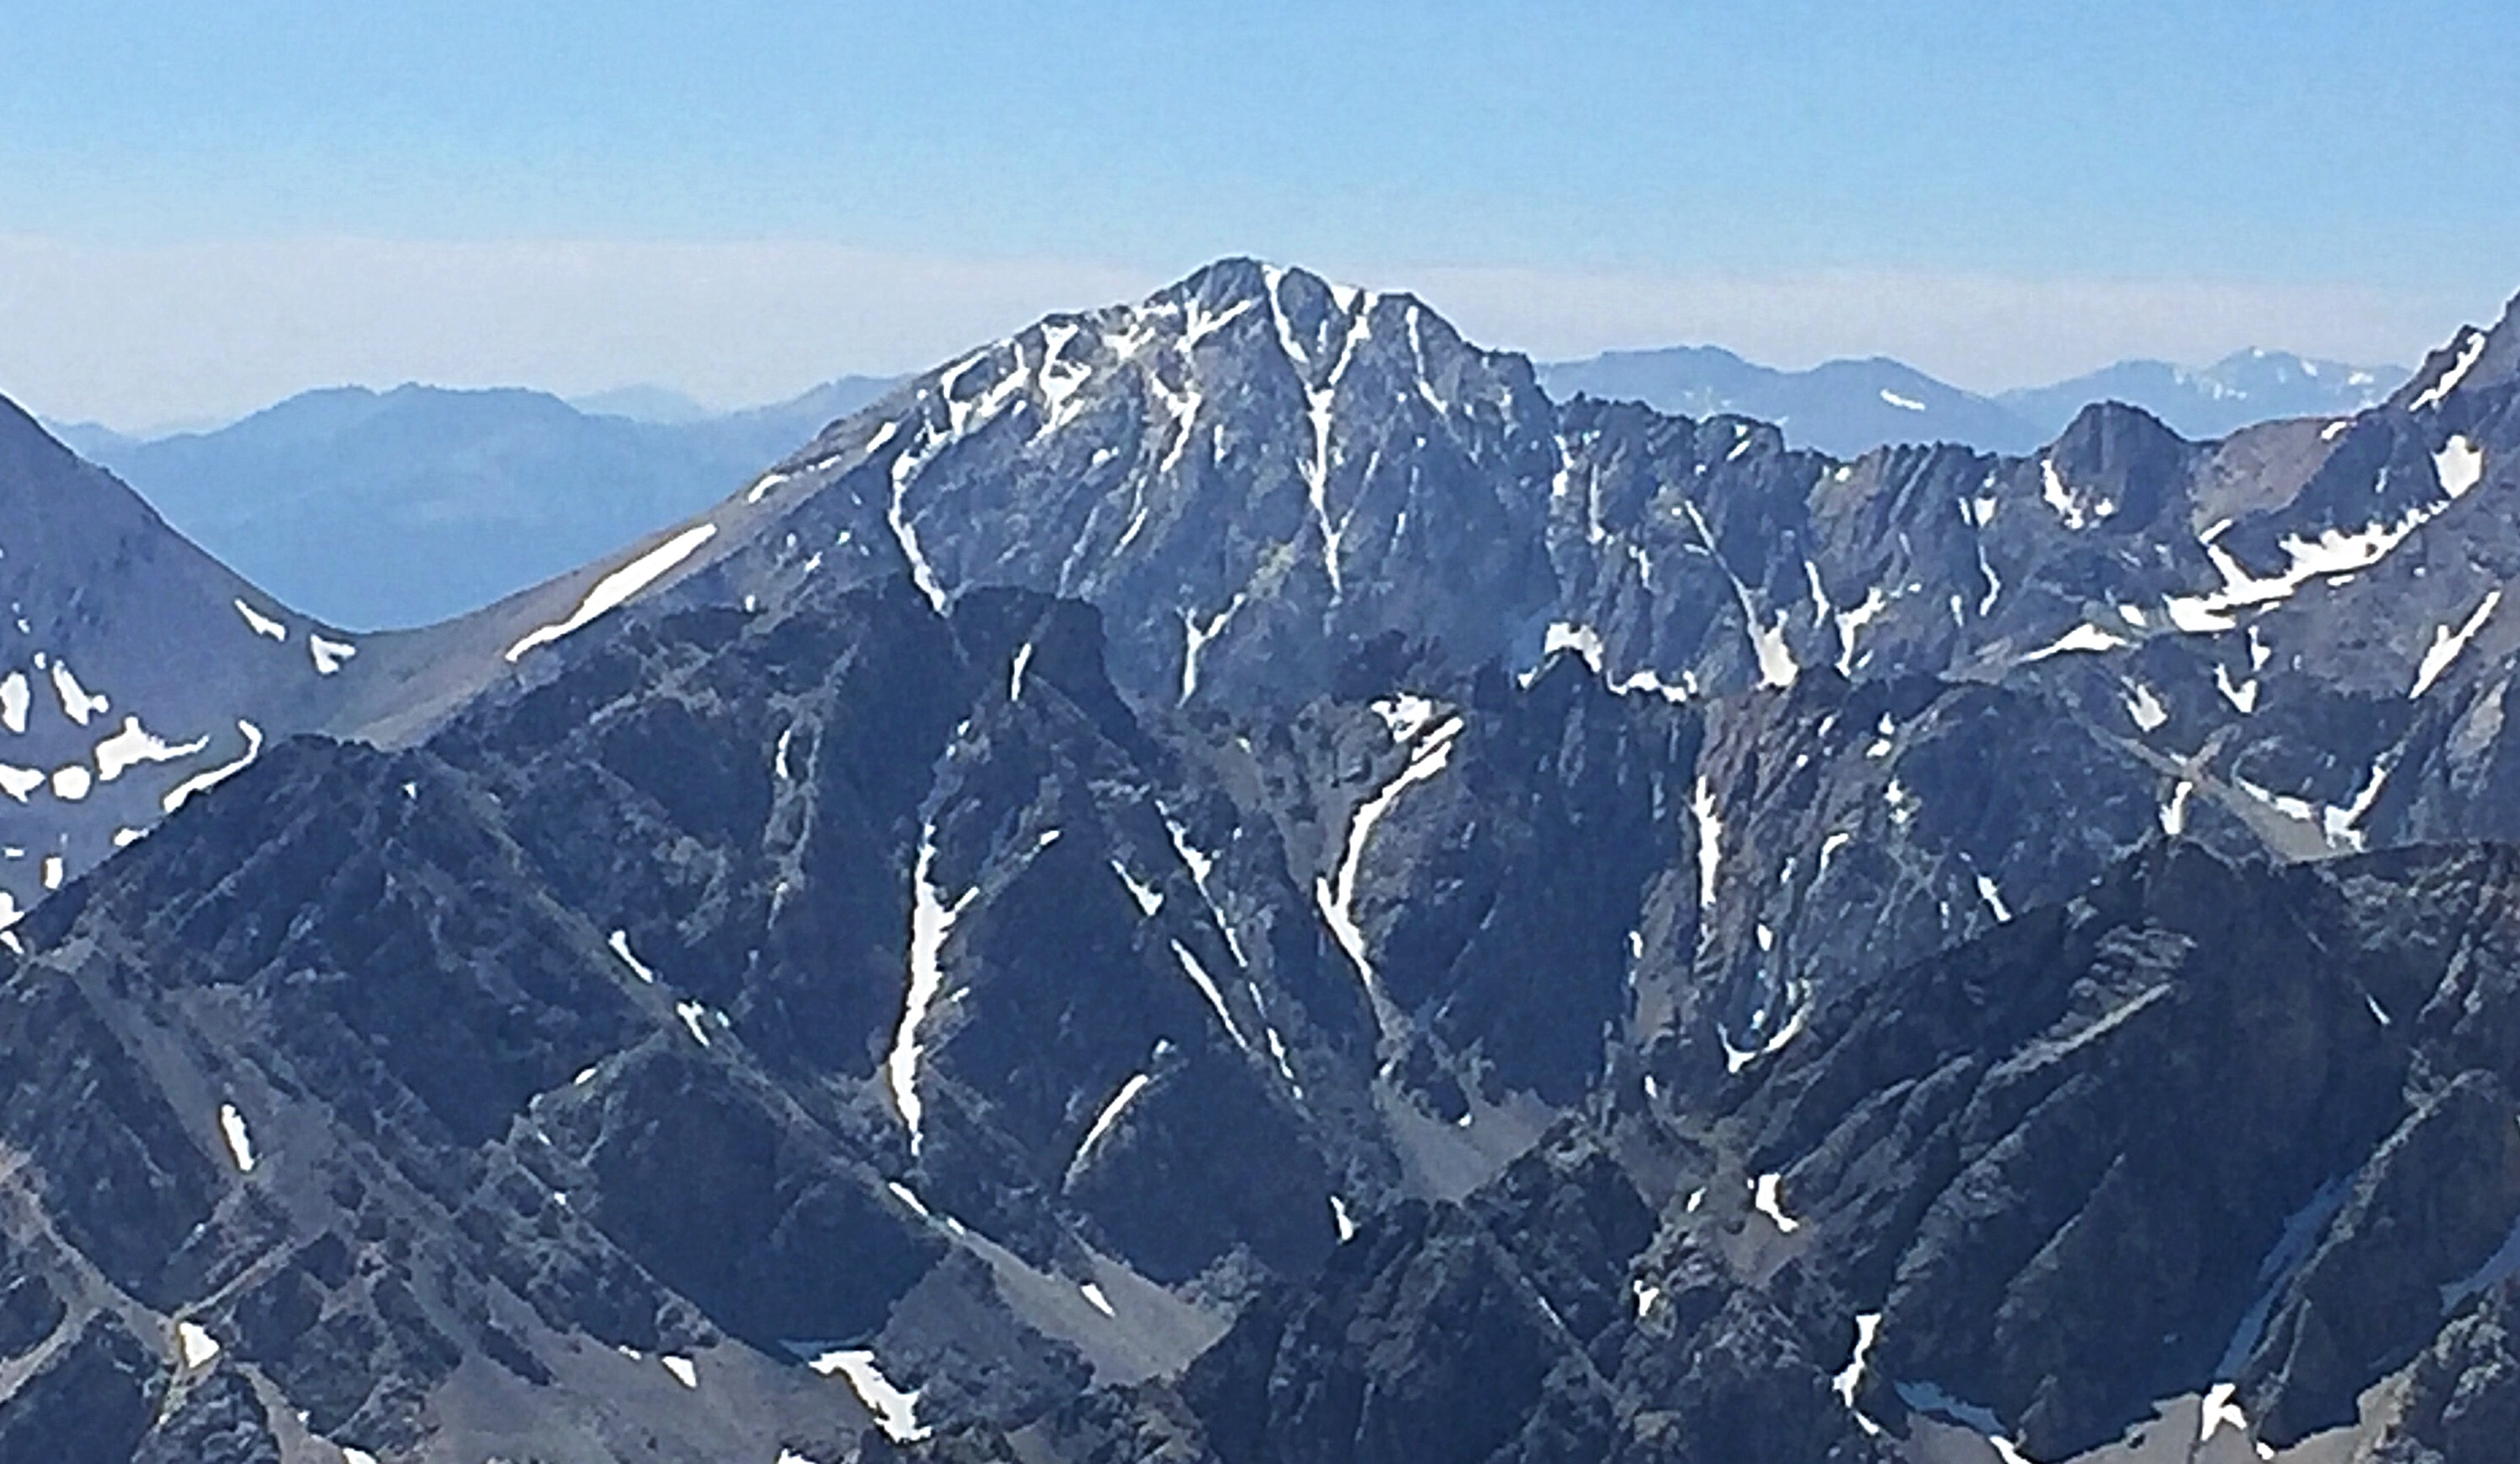 The north face of White Cap Peak from Mountaineers Peak.